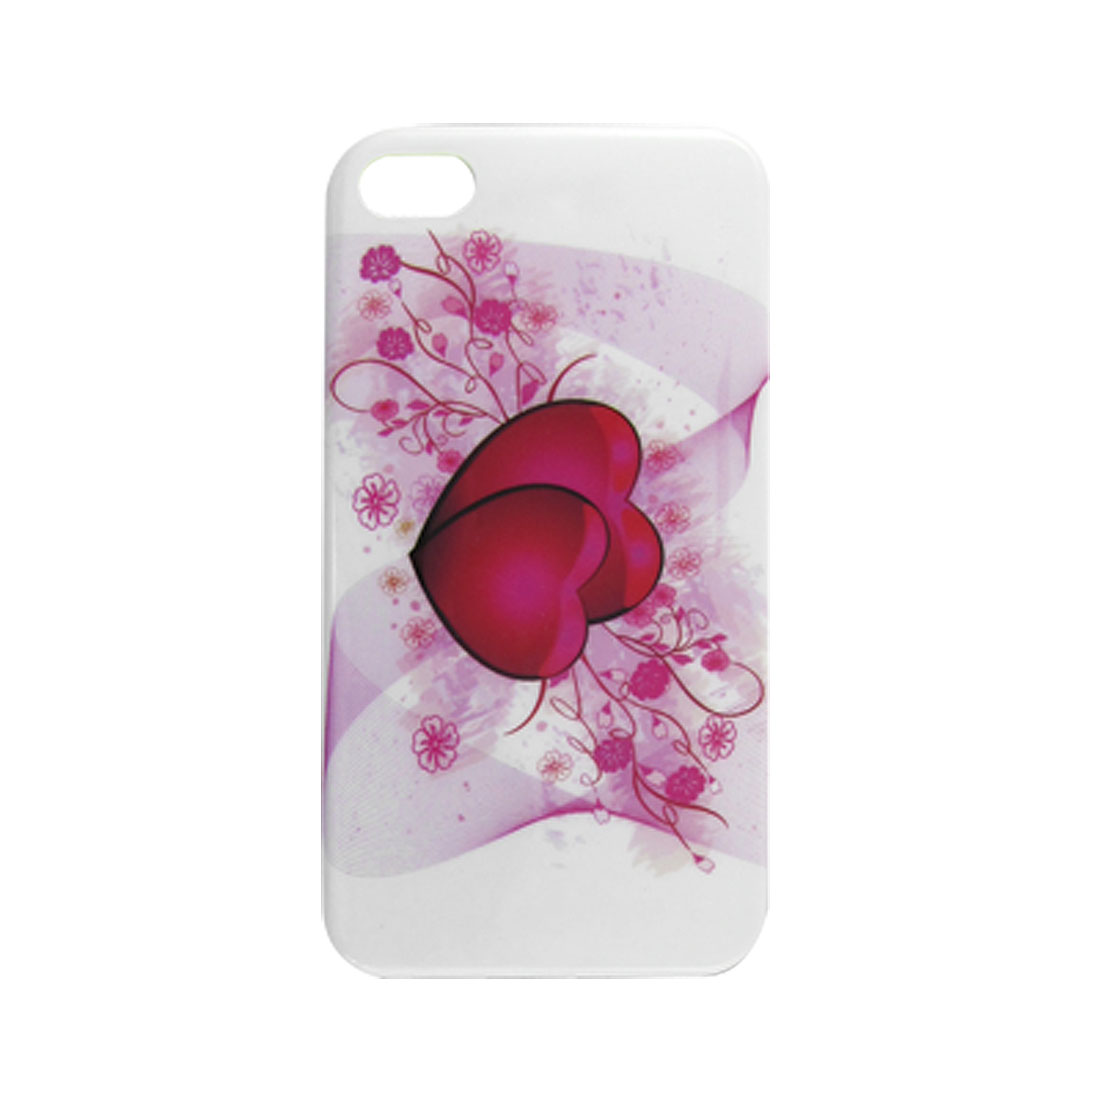 White Red IMD Heart Print Hard Plastic Cover for iPhone 4 4G 4S